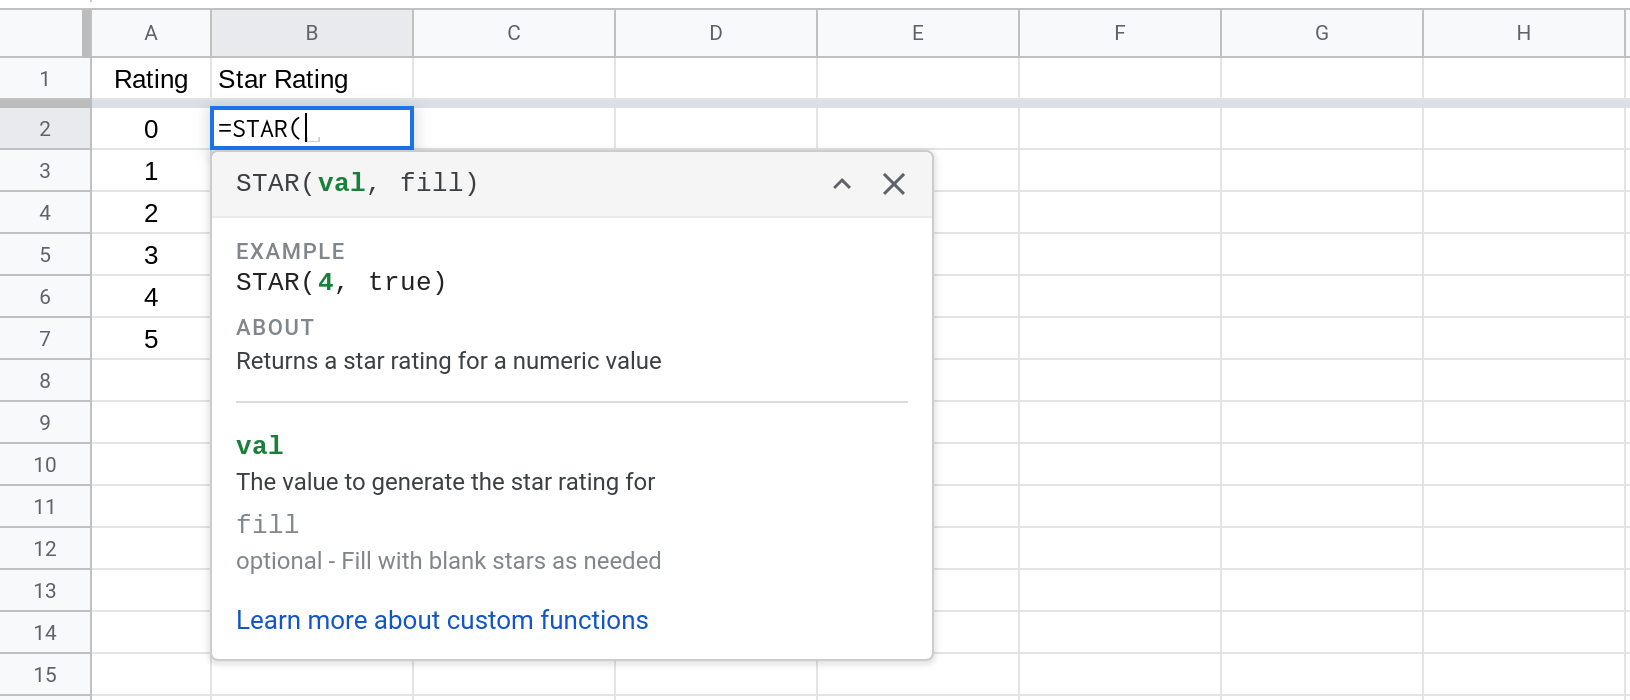 Screenshot of a Google Sheet showing how to use the STAR() function.